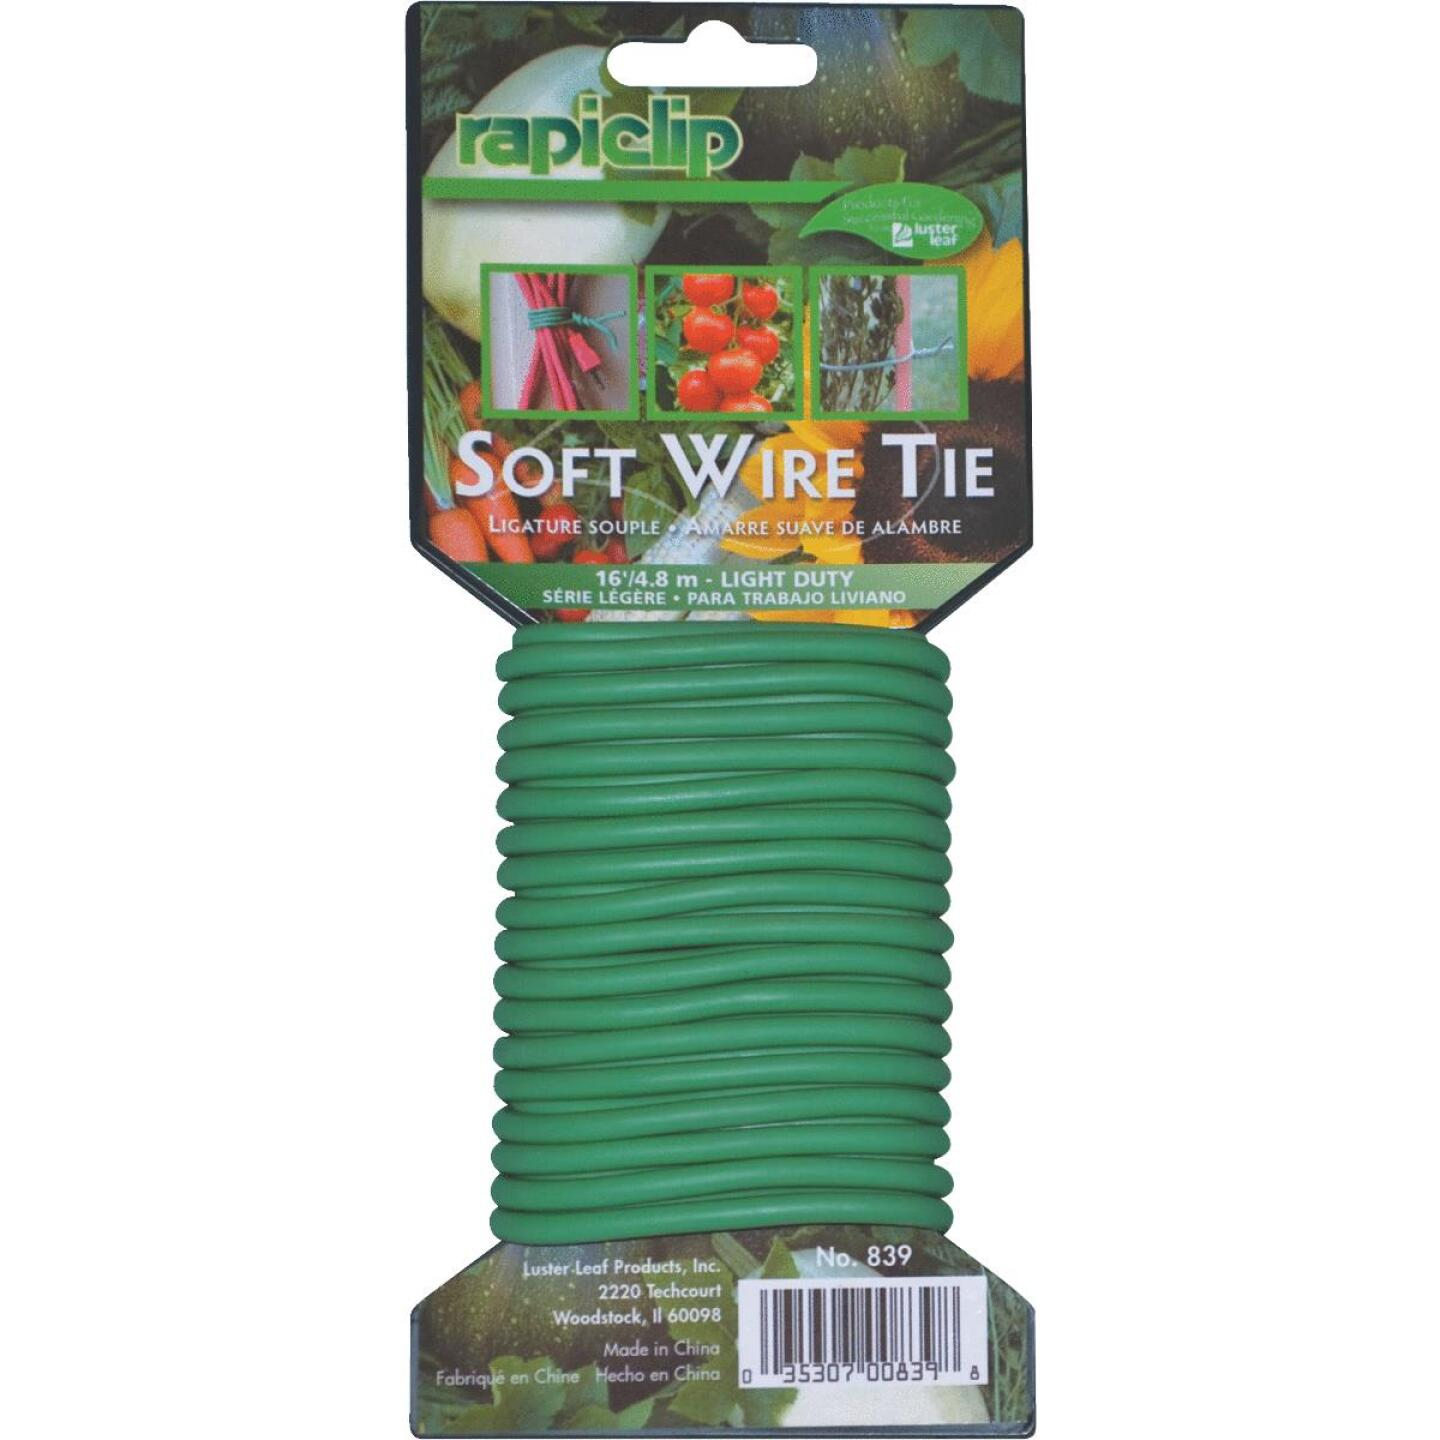 Rapiclip 16 Ft. Green PVC/Rubber Light-Duty Garden Twist Tie Image 1